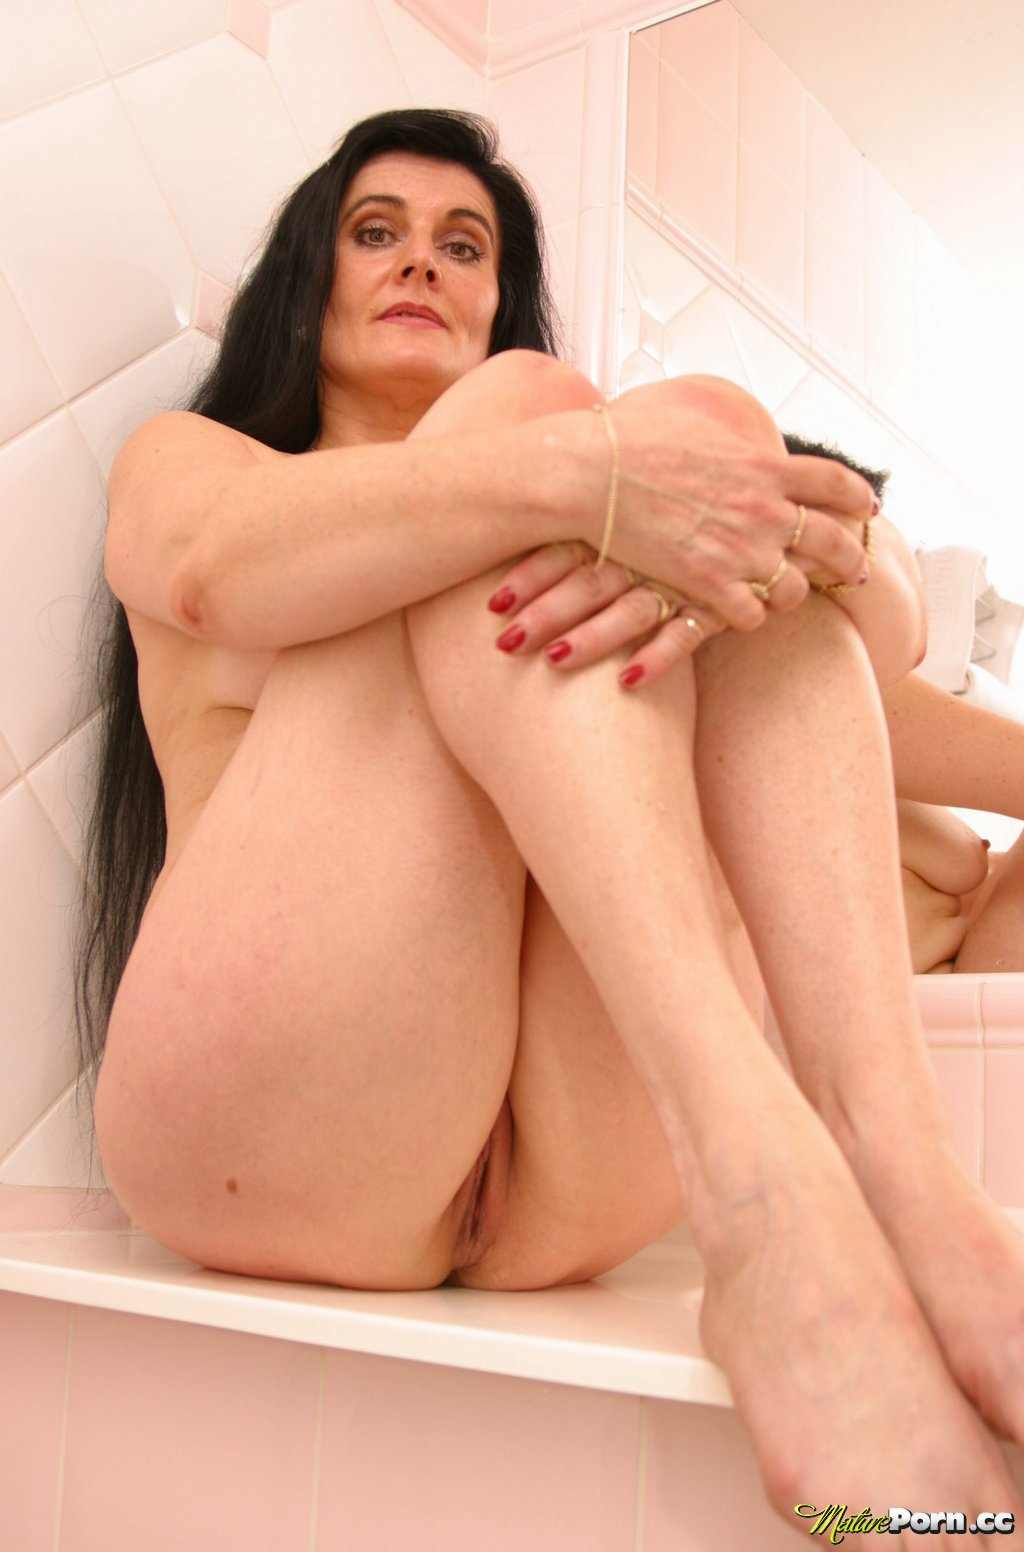 Brunette shaved pussy mature